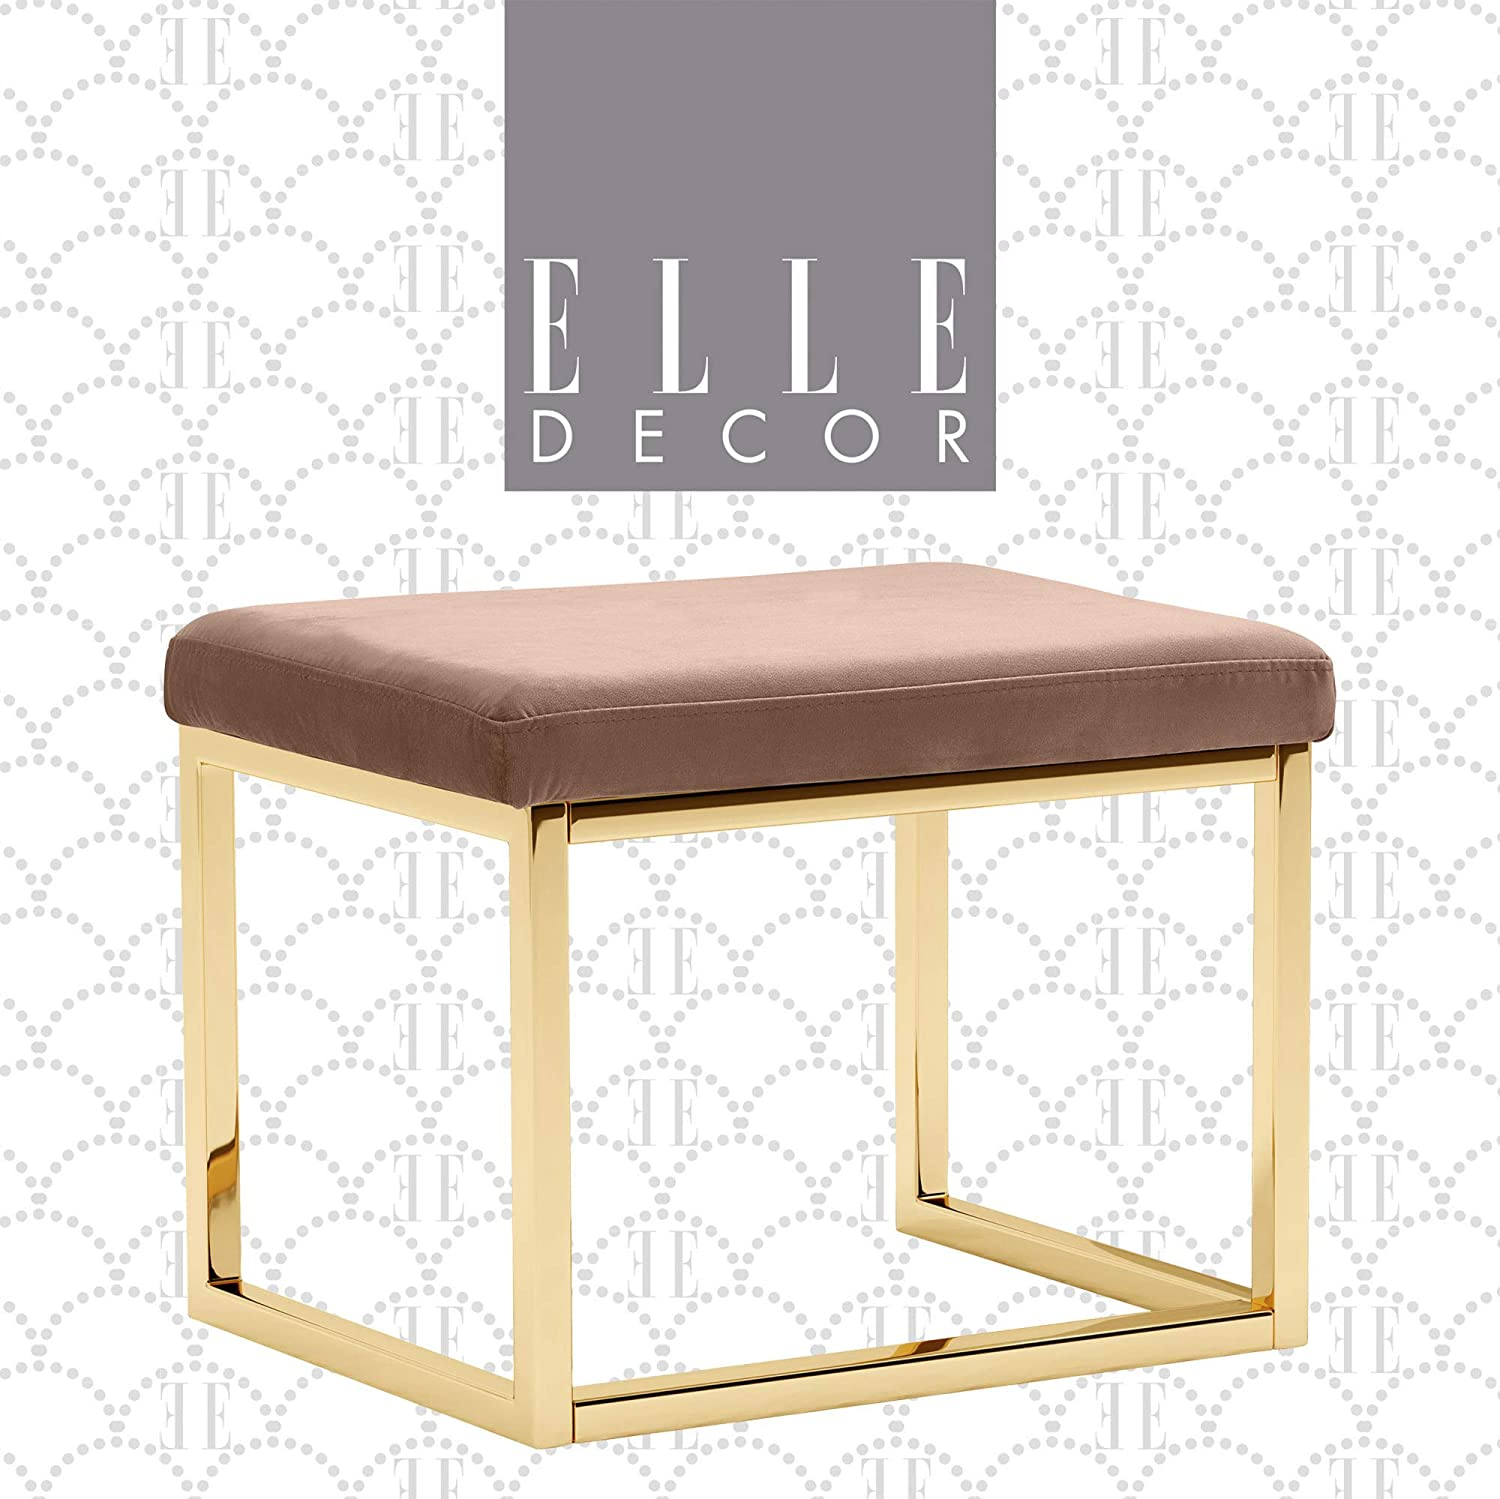 Elle Decor Giselle Upholstered Vanity Stool, Modern Elegant Square Ottoman with Gold Plated Metal Legs, Easy Assembly Accent Furniture, Brown